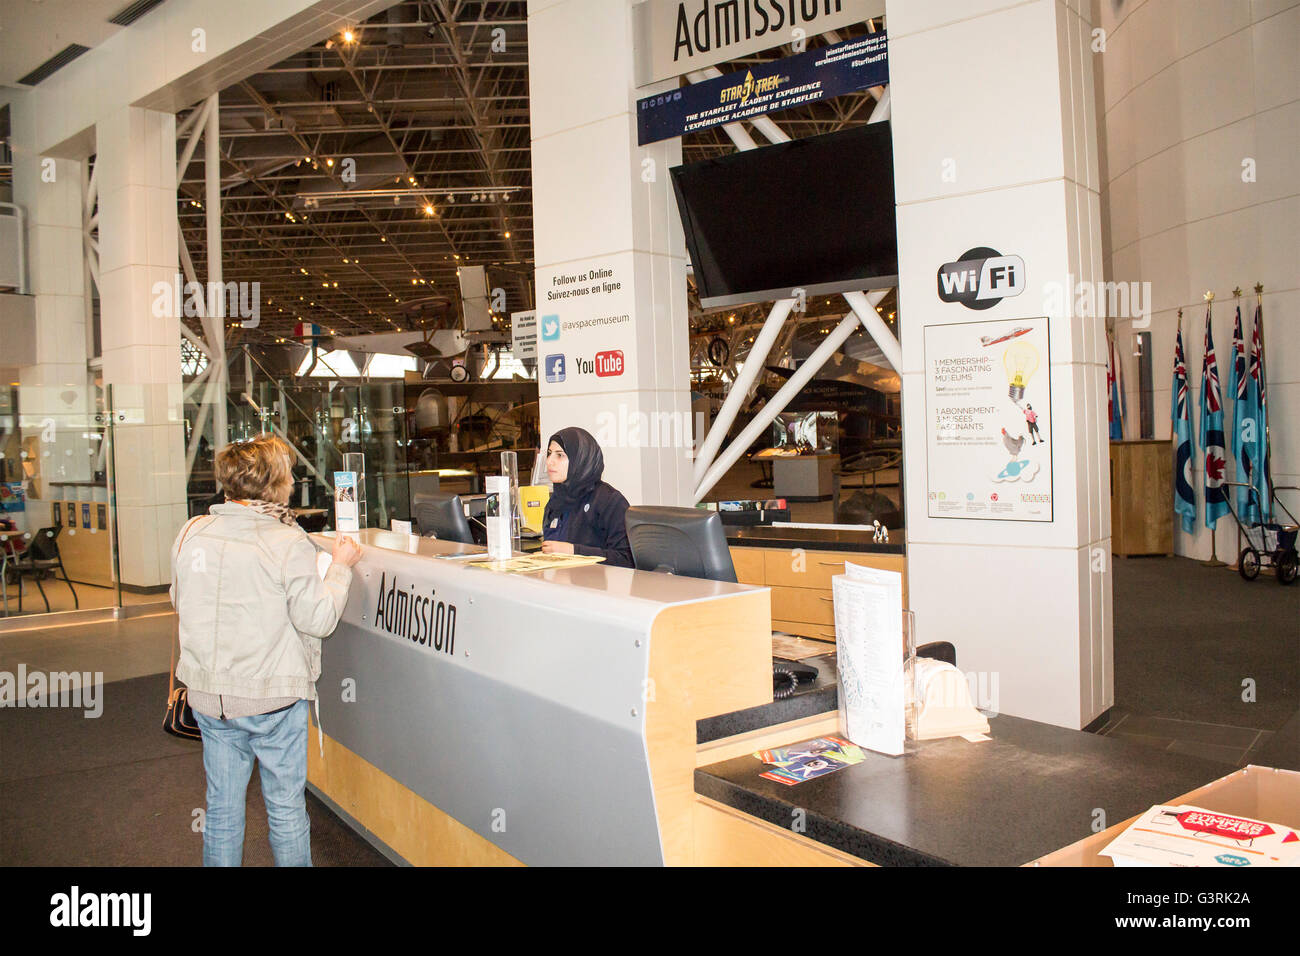 Muslim woman talking with visitor at the admission desk at the Canadian Aviation and Space Museum in Ottawa Ontario, - Stock Image